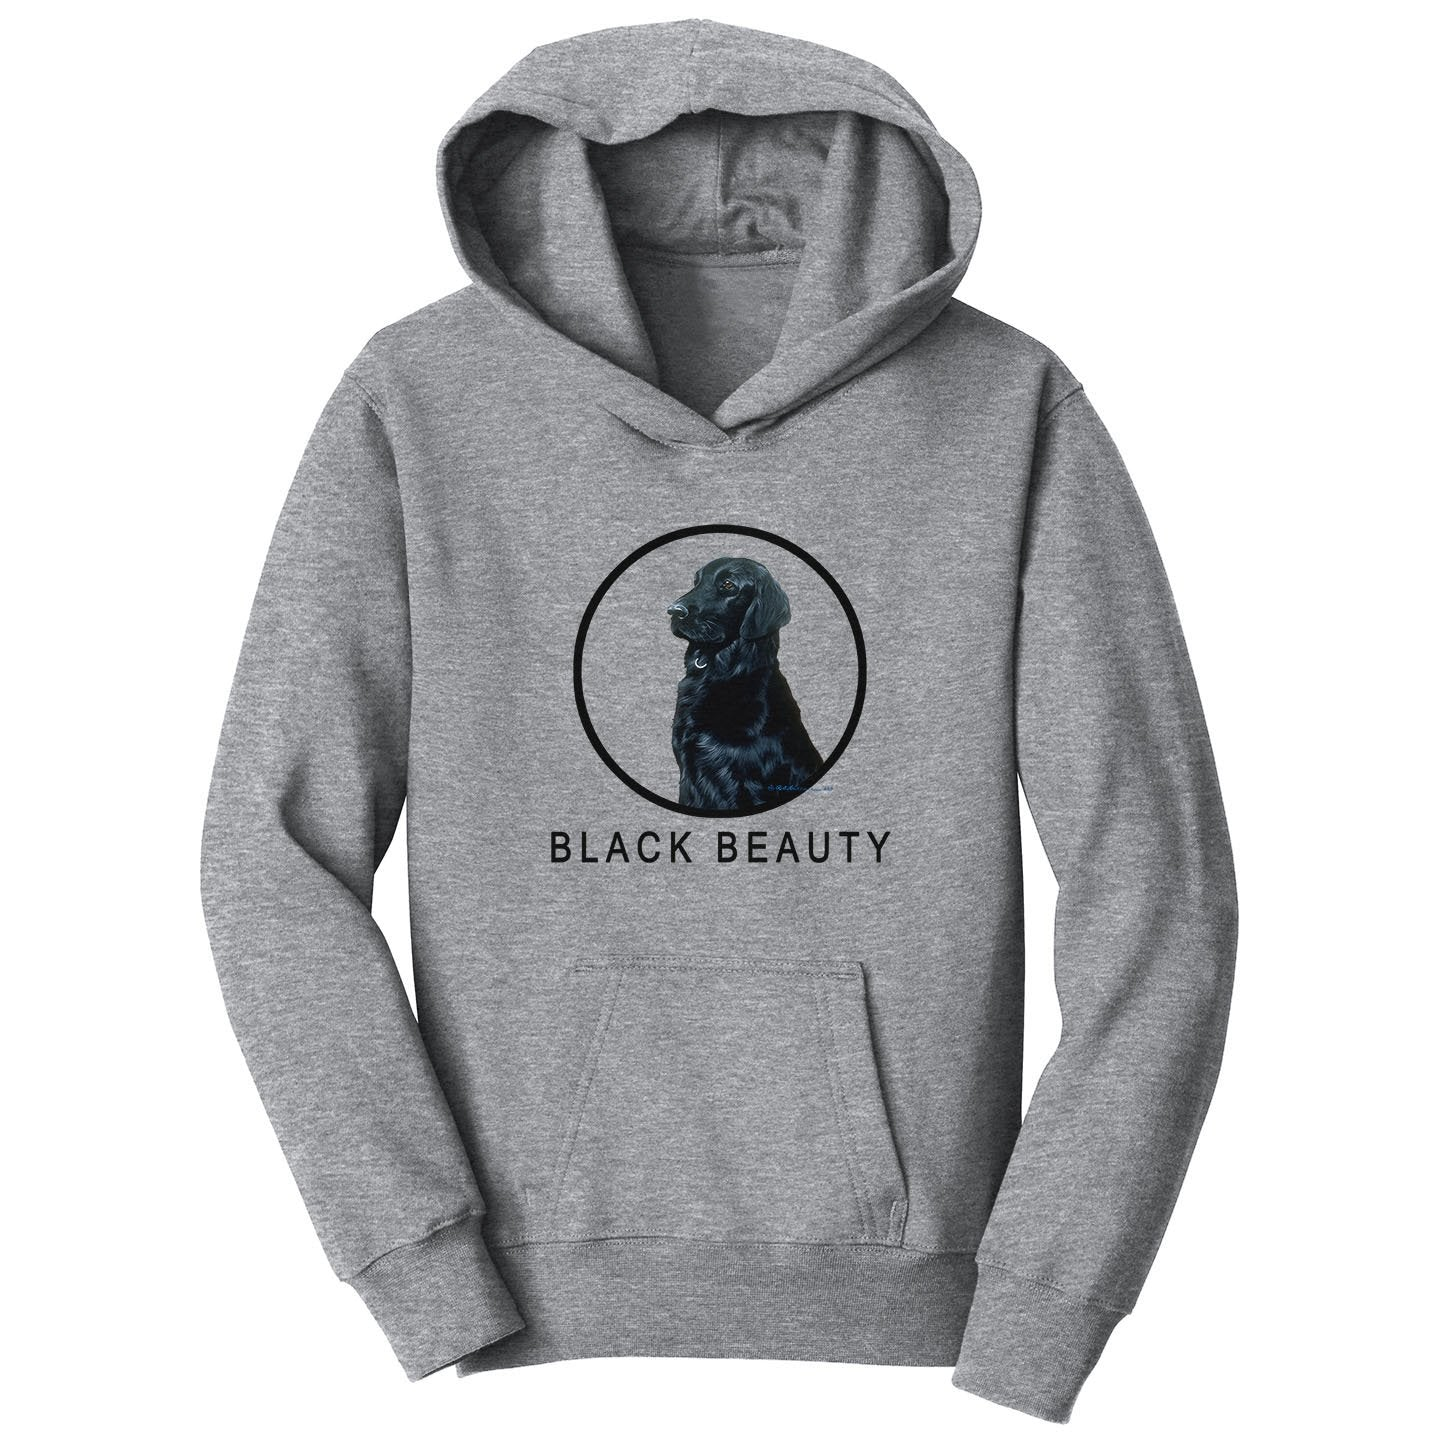 Black Beauty - Kids' Unisex Hoodie Sweatshirt